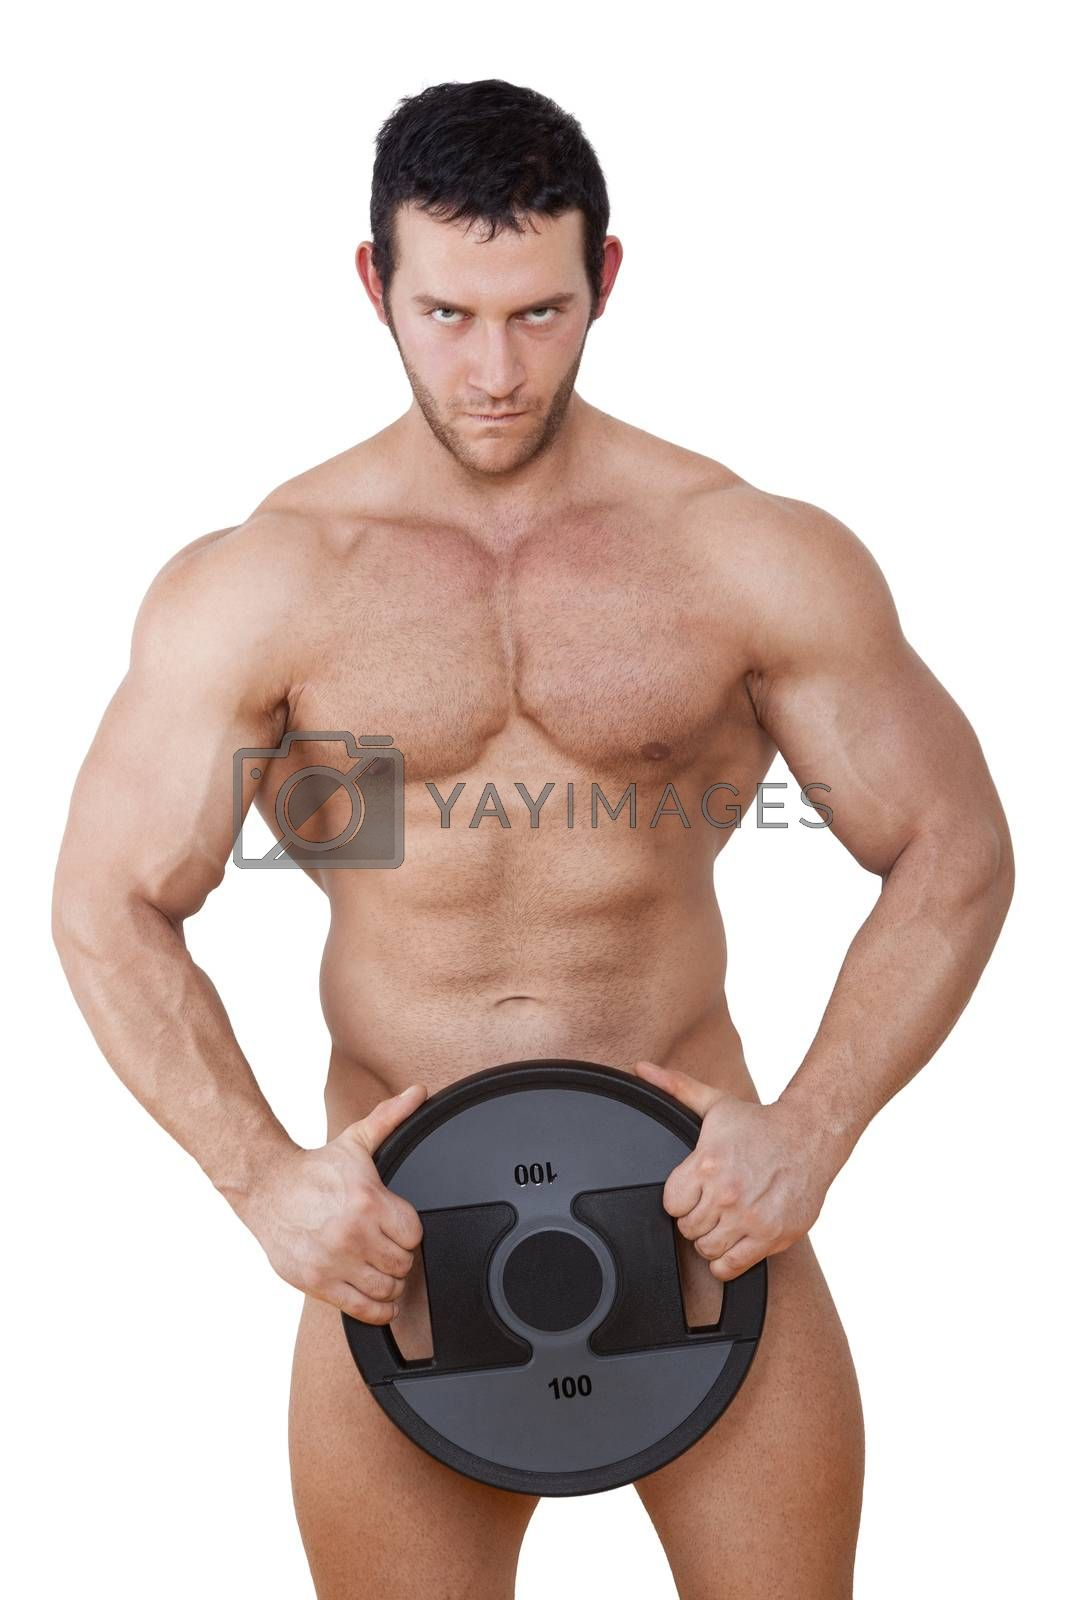 Sexy naked muscular model holding weight isolated on white background with clipping path. Sport and Fitness Background.